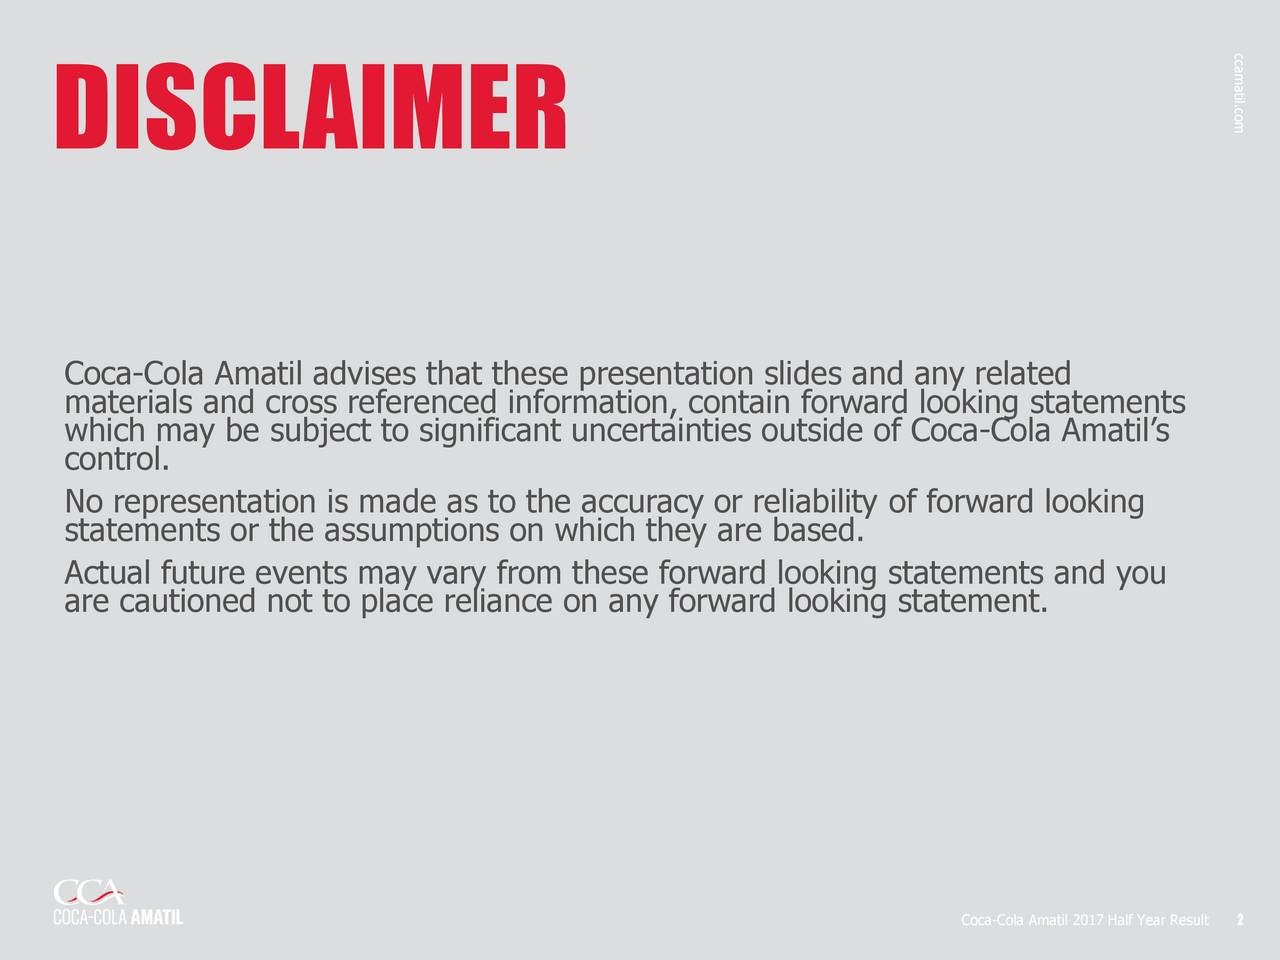 DISCLAIMER Coca-Cola Amatil advises that these presentation slides and any related materials and cross referenced information, contain forward looking statements which may be subject to significant uncertainties outside of Coca-Cola Amatils control. No representation is made as to the accuracy or reliability of forward looking statements or the assumptions on which they are based. Actual future events may vary from these forward looking statements and you are cautioned not to place reliance on any forward looking statement. Coca-Cola Amatil 2017 Half Year Result